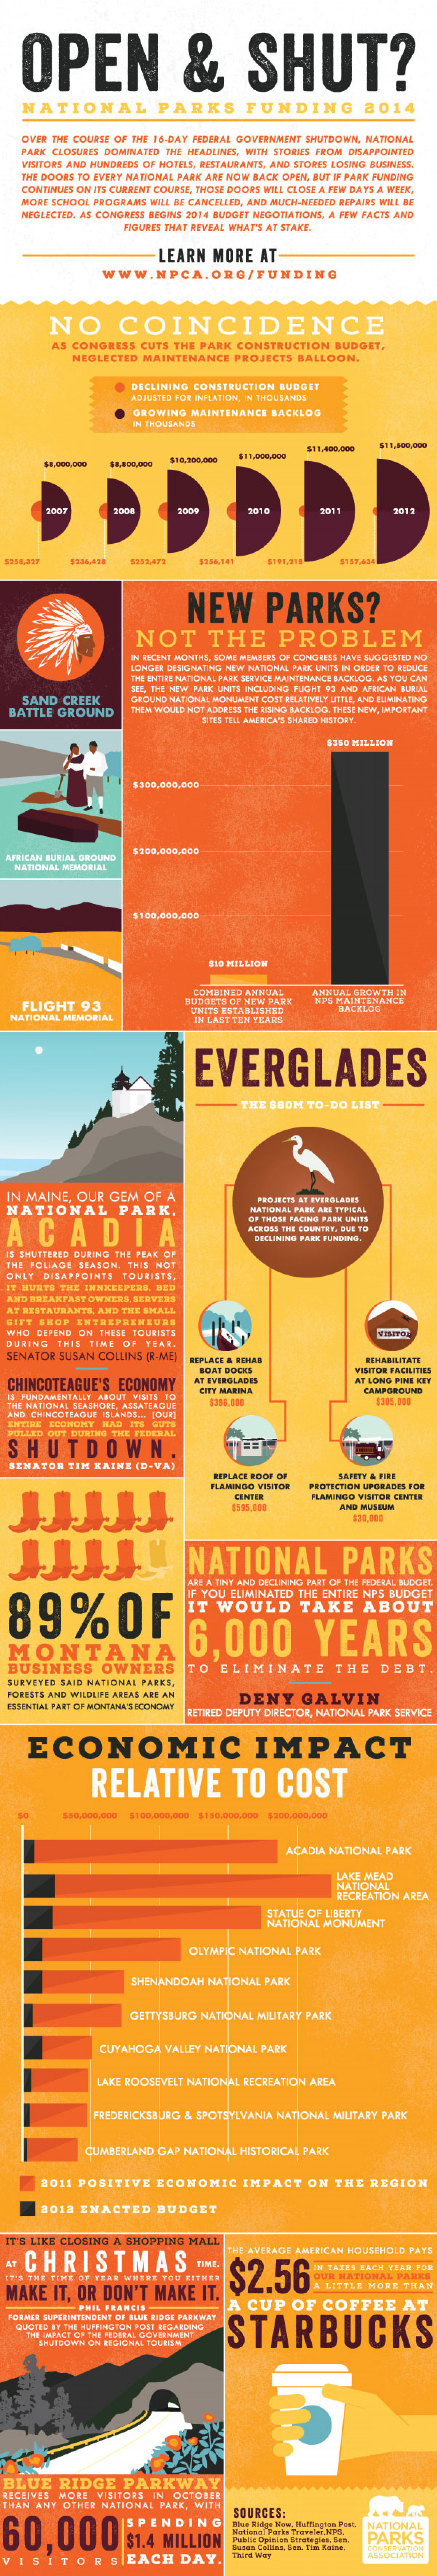 Open & Shut? National Parks Funding 2014 Infographic